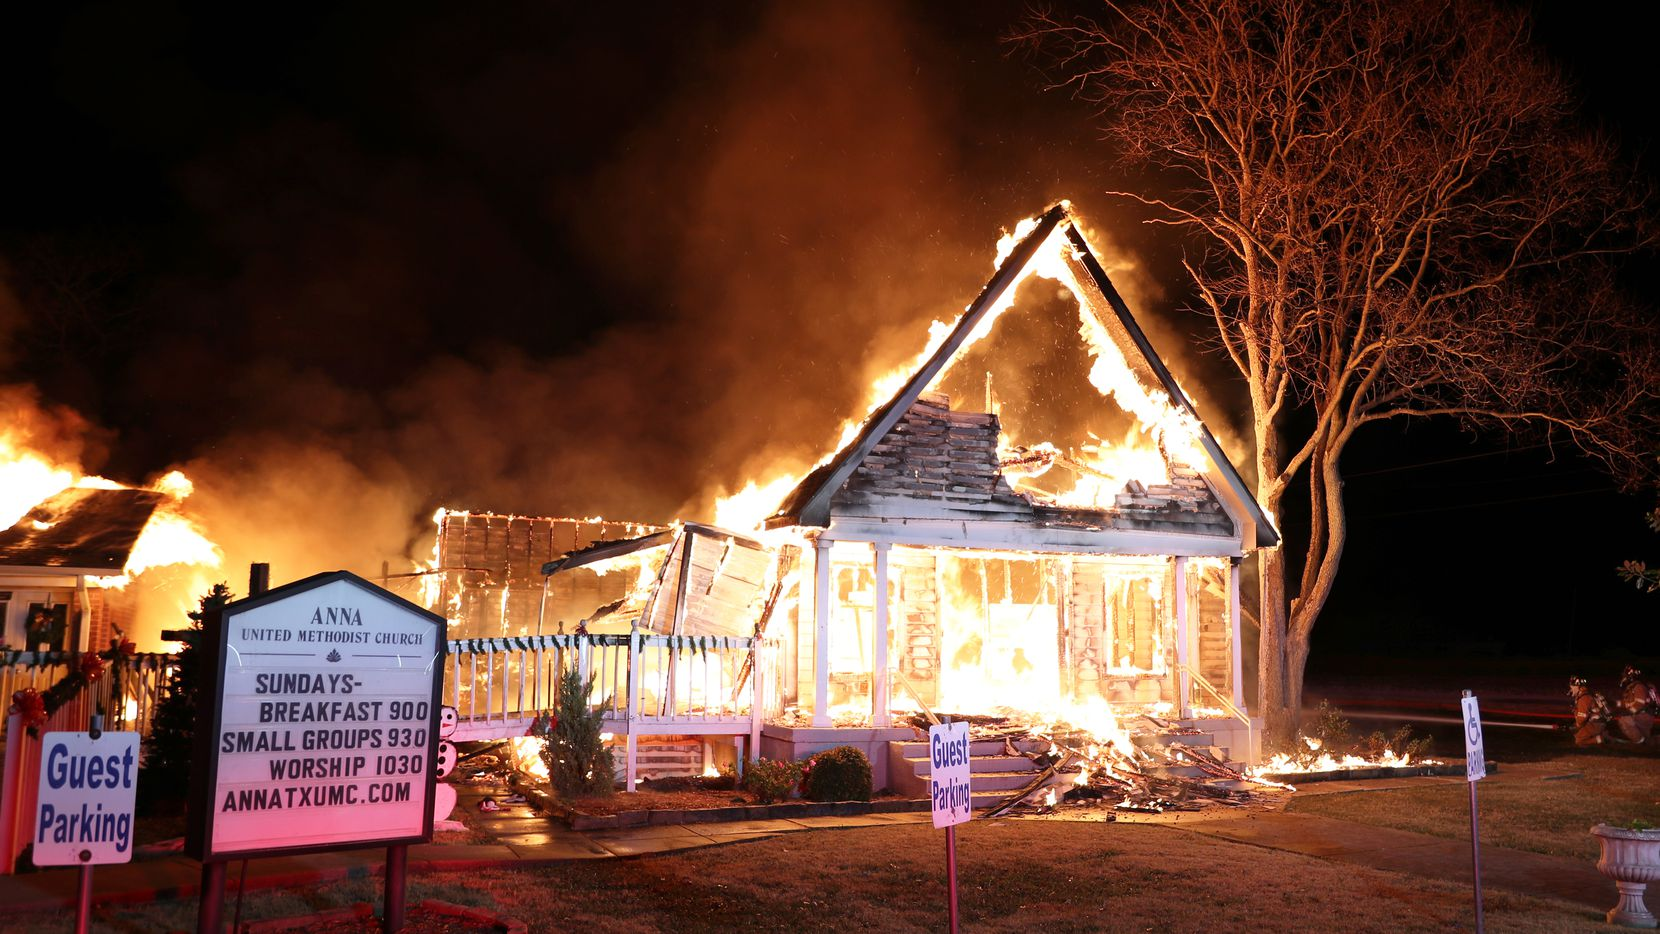 Crews from the Blue Ridge, McKinney, Melissa, Westminster and Weston fire departments helped Anna firefighters put out the blaze at Anna United Methodist Church on Thursday.